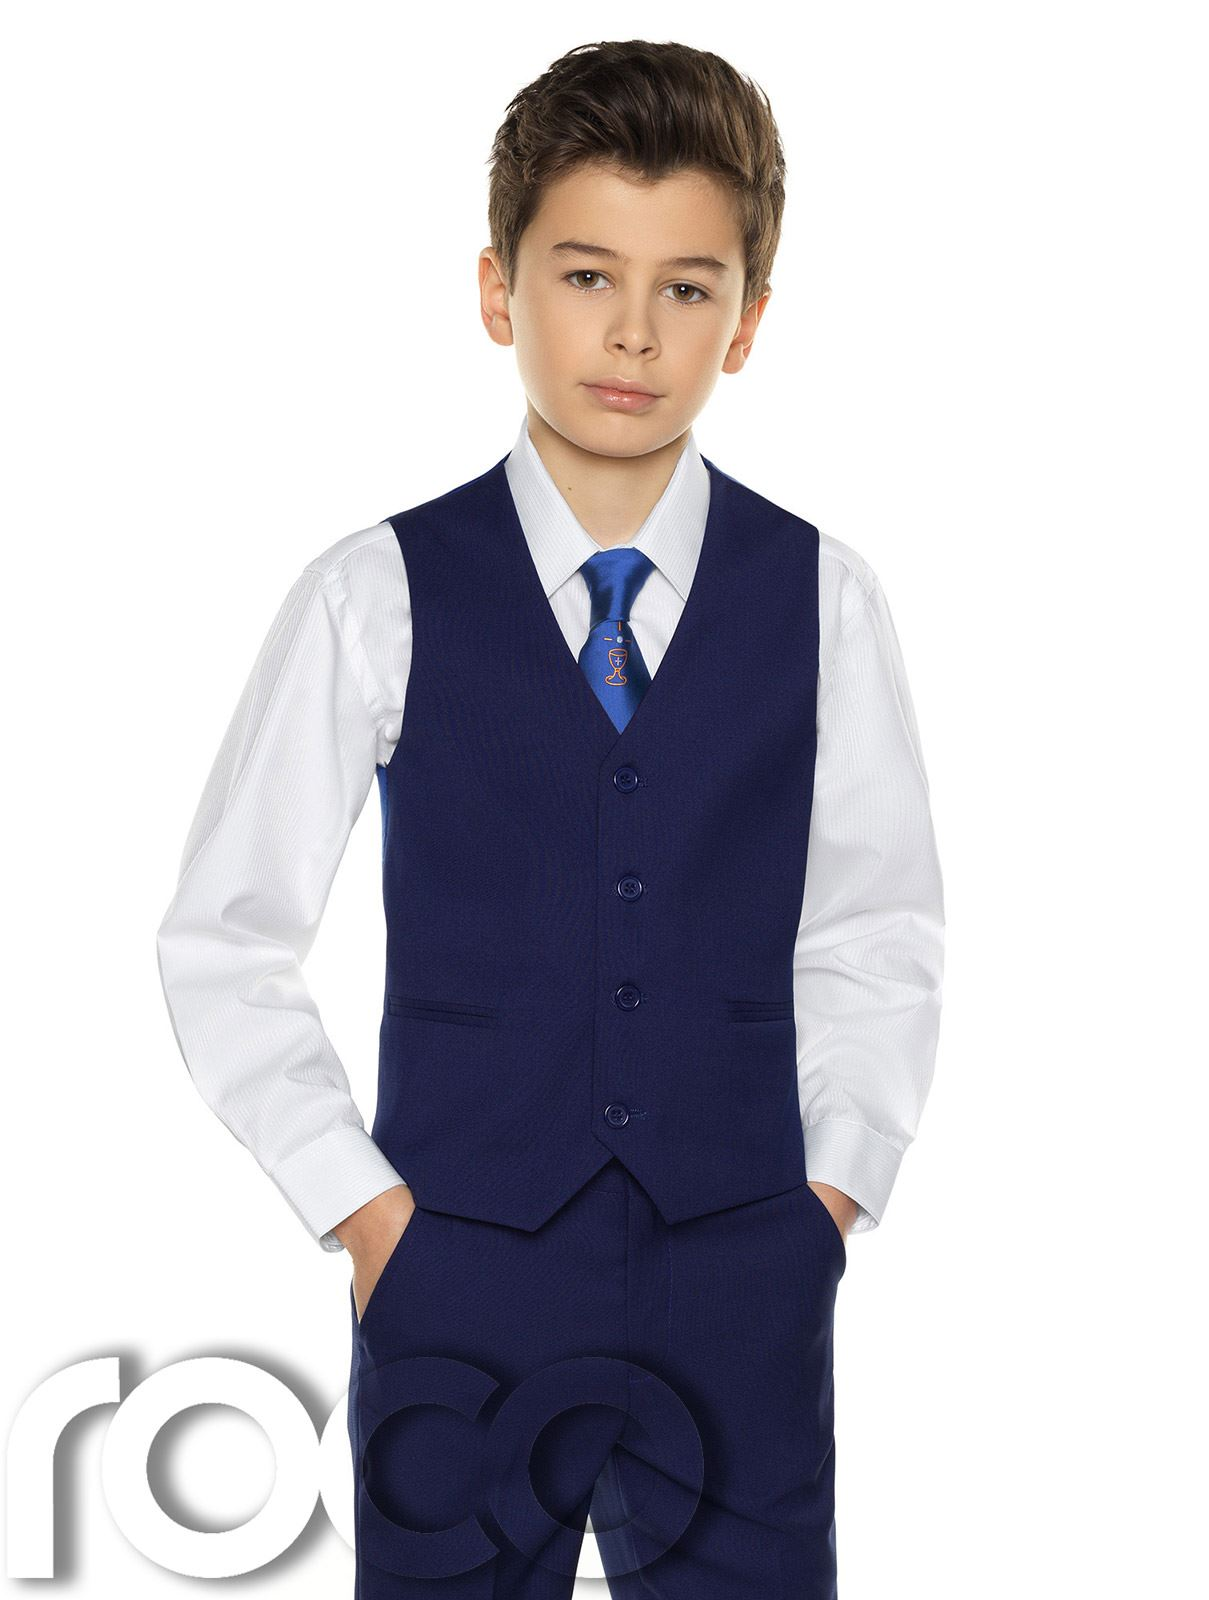 Boys Items – Don't forget the little man in your event. Flower Girl Dress For Less carries a large selection of boys apparel including suits, tuxedos and finishing accessories at unbeatable prices.